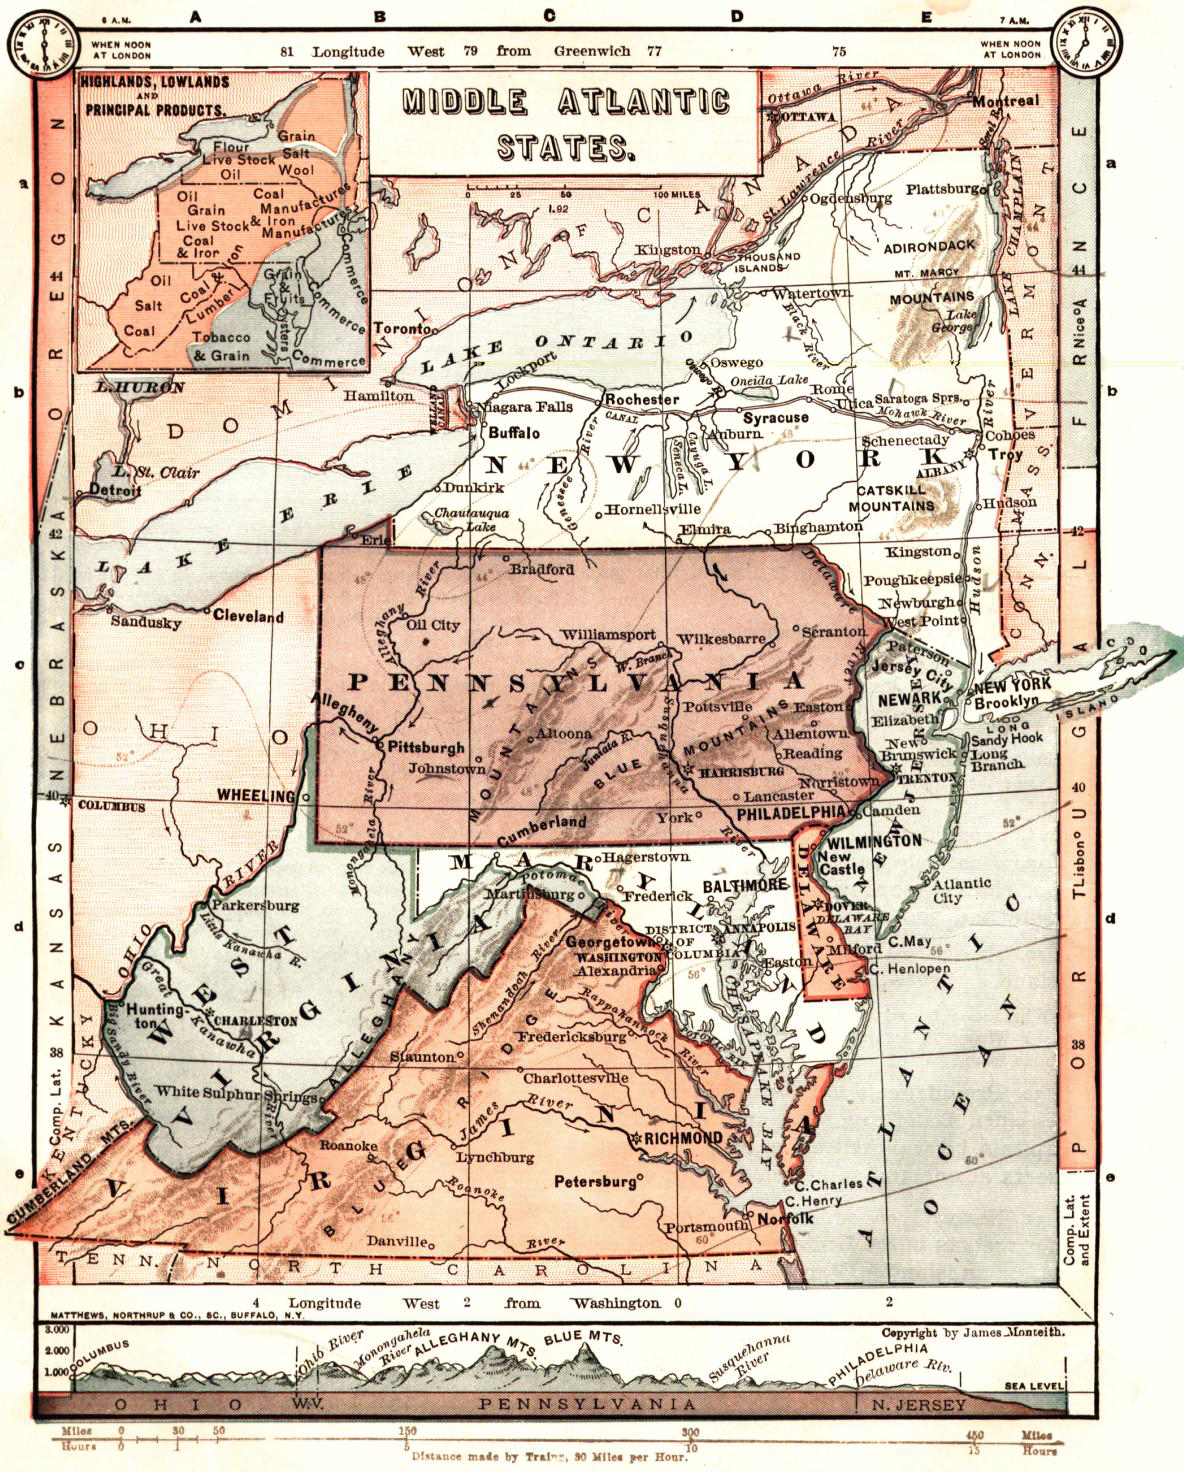 File:Middle Atlantic States - 1883 Monteith map.jpg ... on map of north central usa, map of usa with states and cities, map of usa and mexico, map of mountain usa, mid east map of usa, map of united states and canada with cities, map of western usa, map of usa and aruba, middle east usa, the middle of the usa, map of madison usa, map of eastern usa, map of old usa, map of central united states, map of usa with scale, united states maps usa, new york on map of usa, map of the lower usa, big map of usa, carte usa,